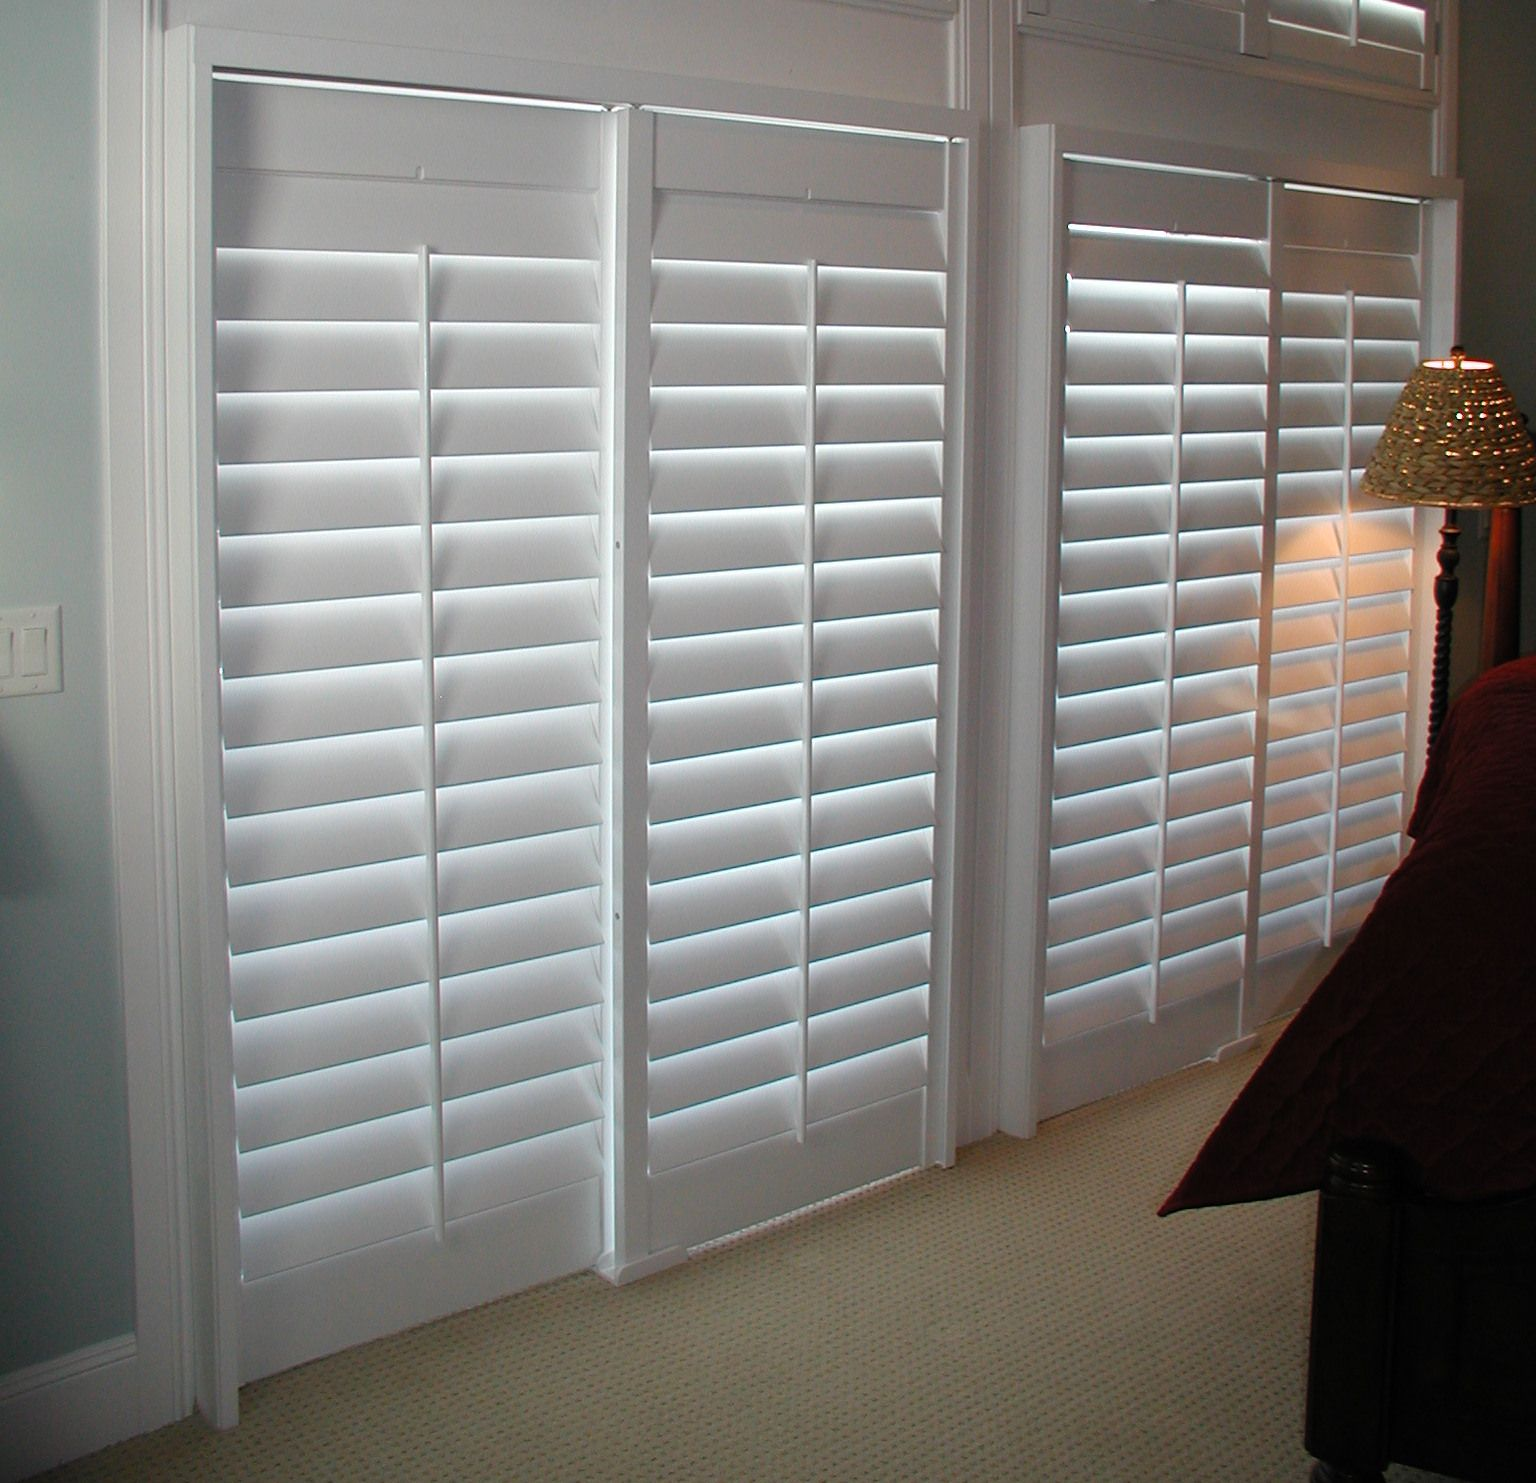 Sliding door shutters offer quality, functionality, and